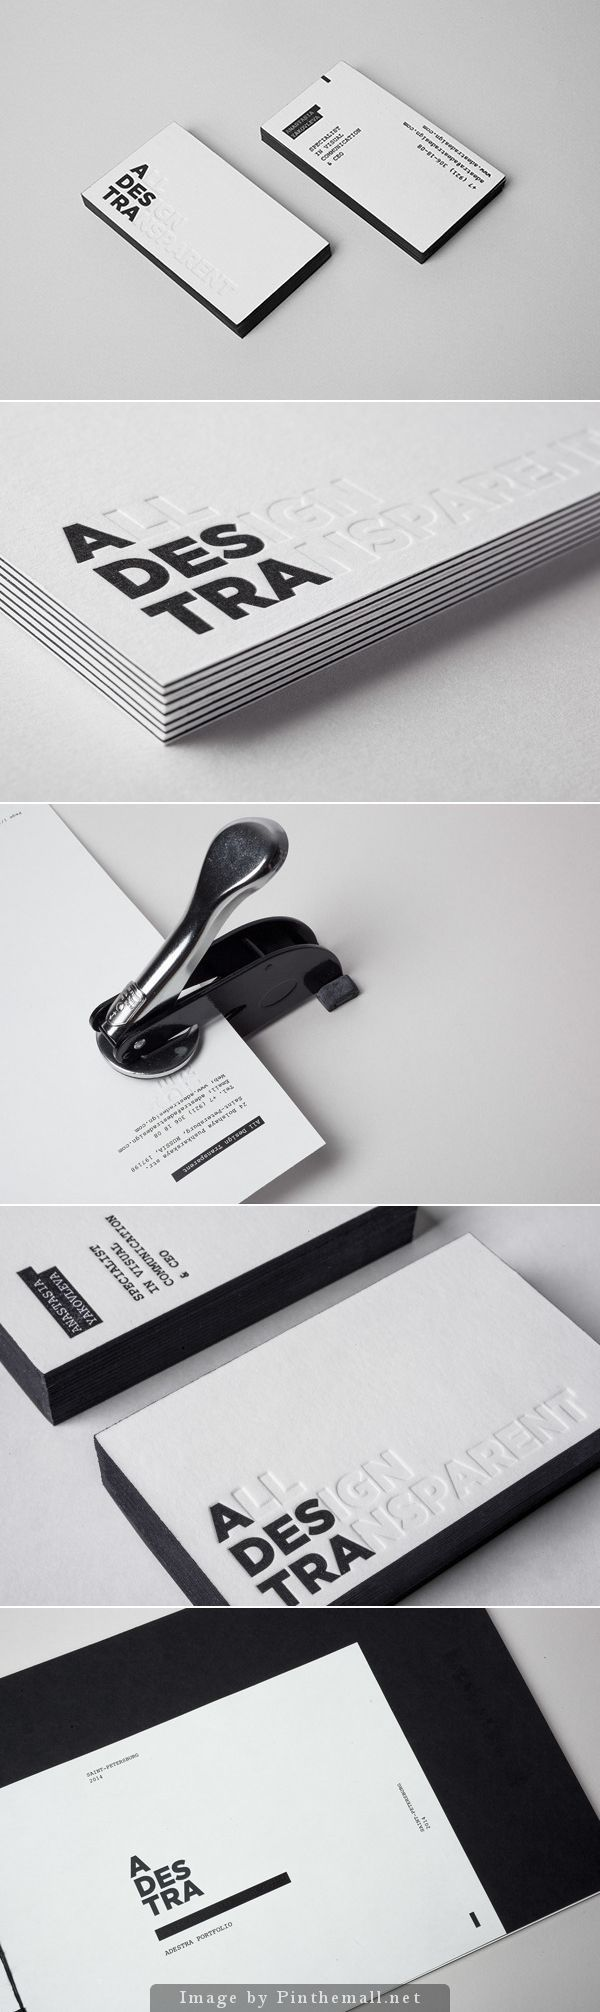 52 best business cards images on pinterest embossed business fiverr freelancer will provide business cards stationery services and design business card in 24 hrs including print ready within 2 days magicingreecefo Choice Image